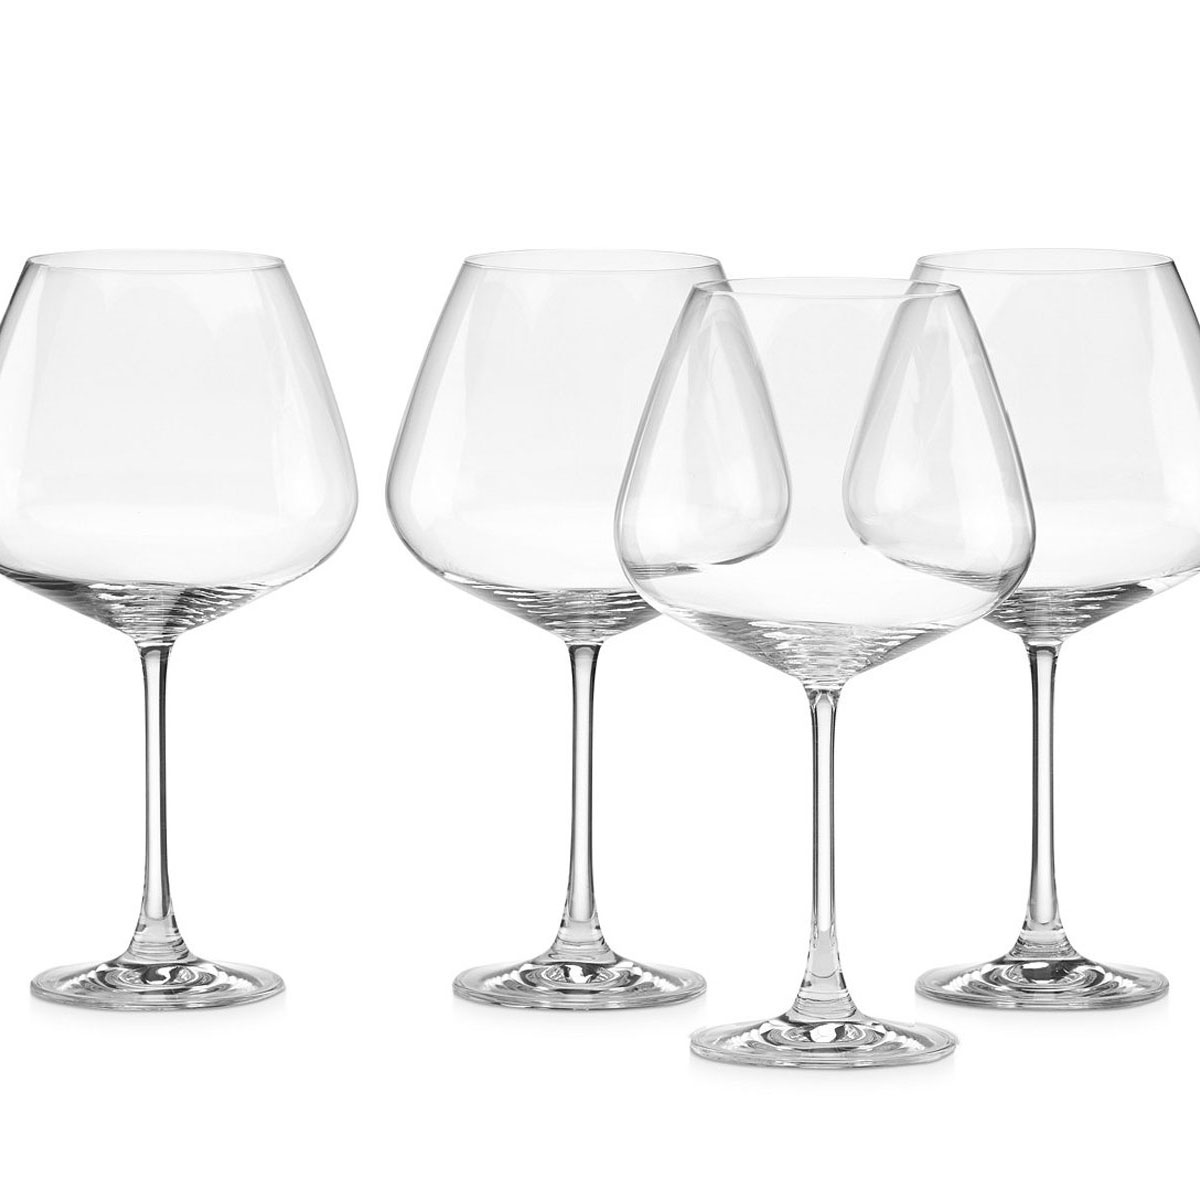 Lenox Tuscany Classics, Crystal Burgundy, Set of 4